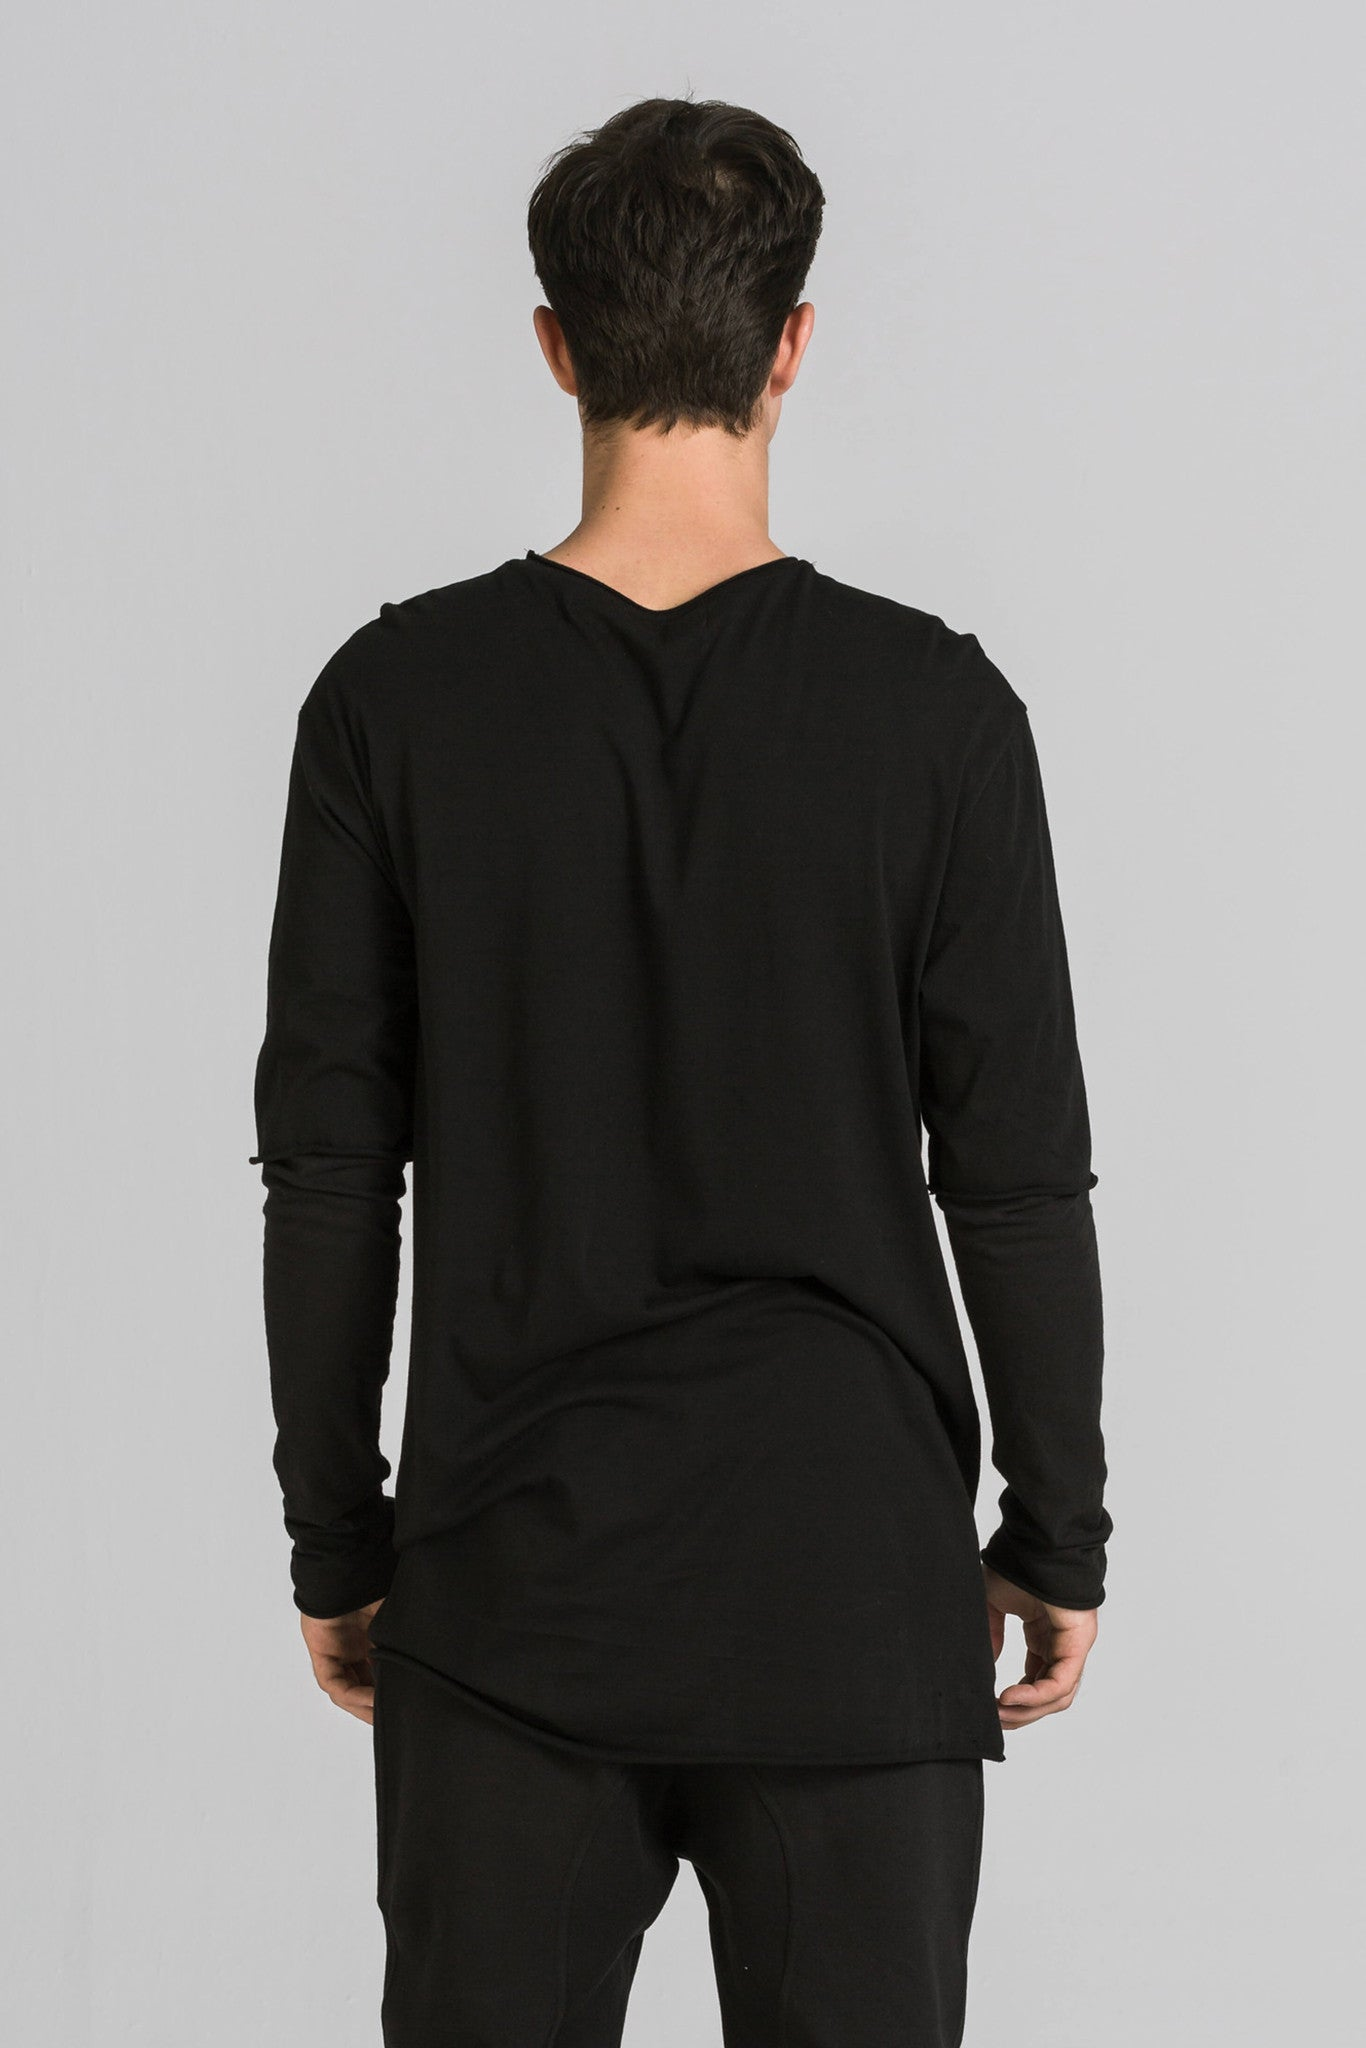 SURFACE DUO LS BLACK TEE